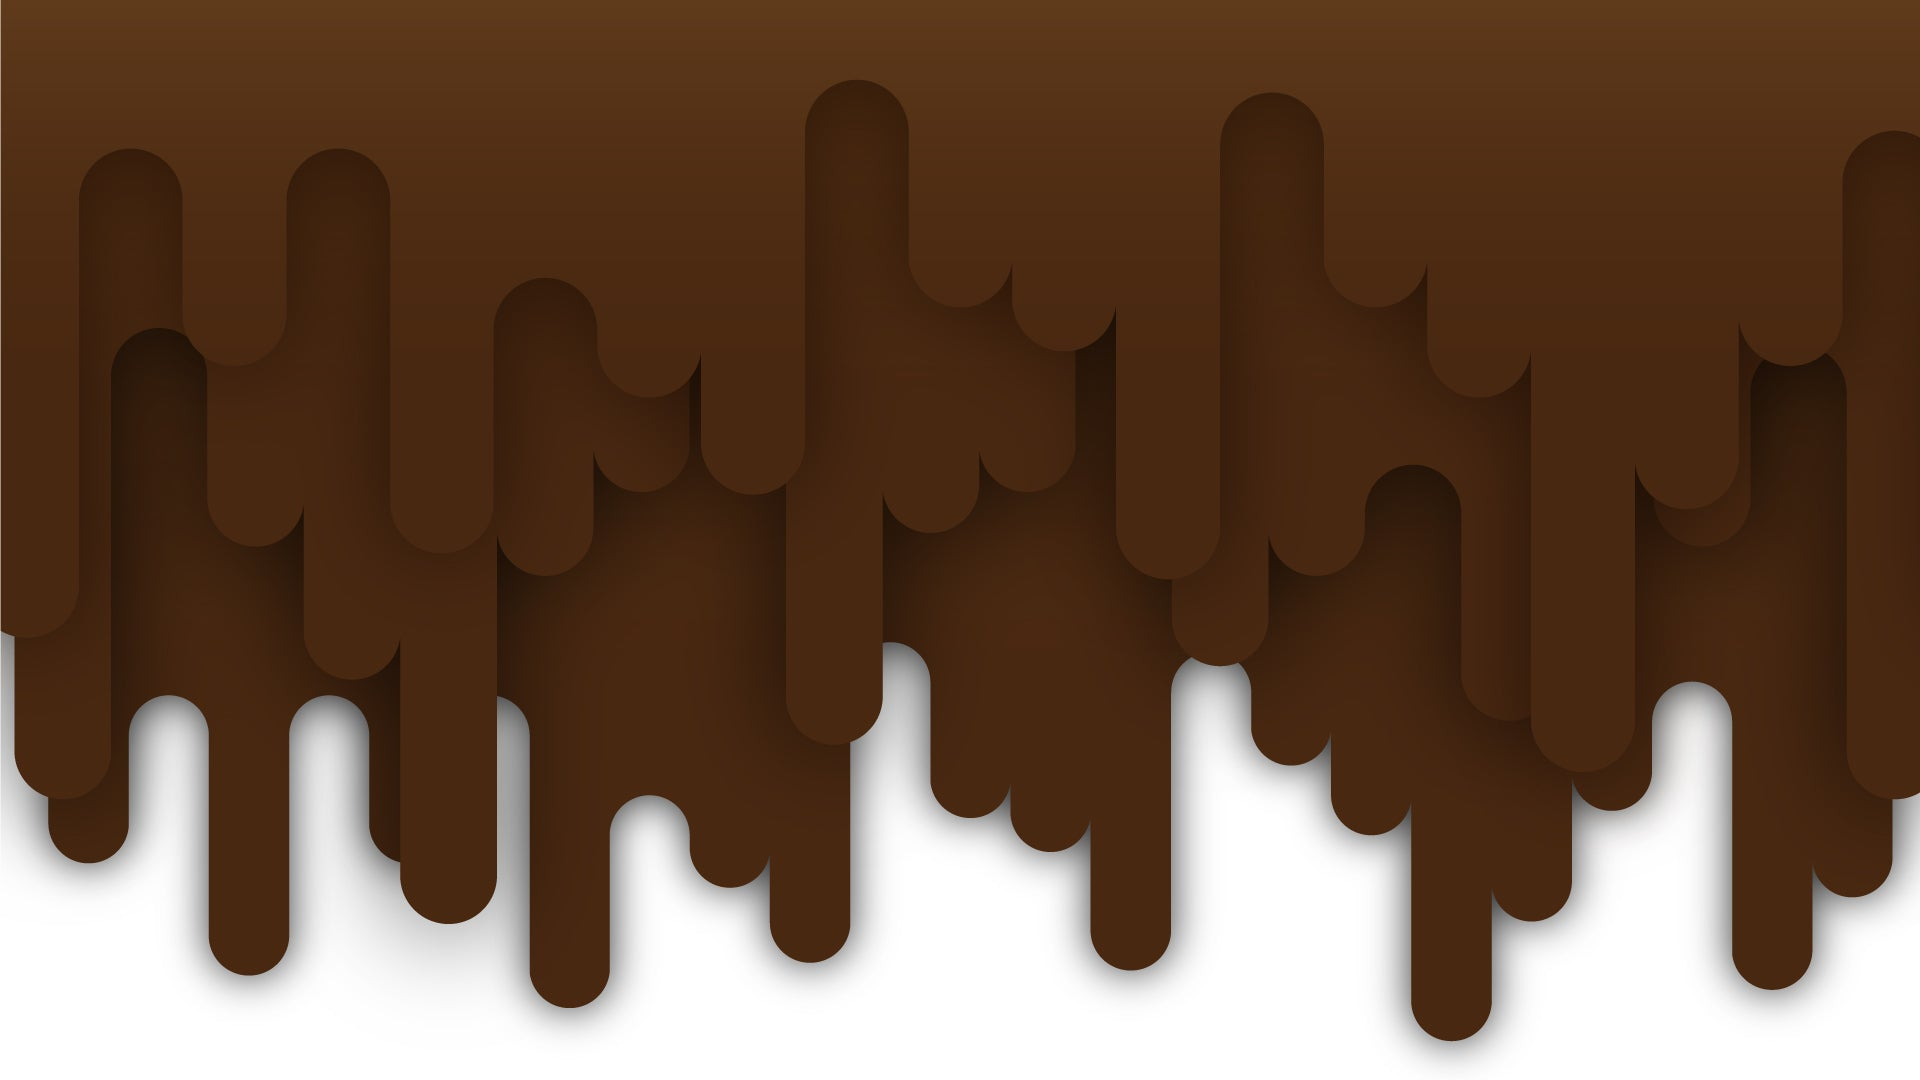 Melting Chocolate - It's Too Hot To Ship Chocolate